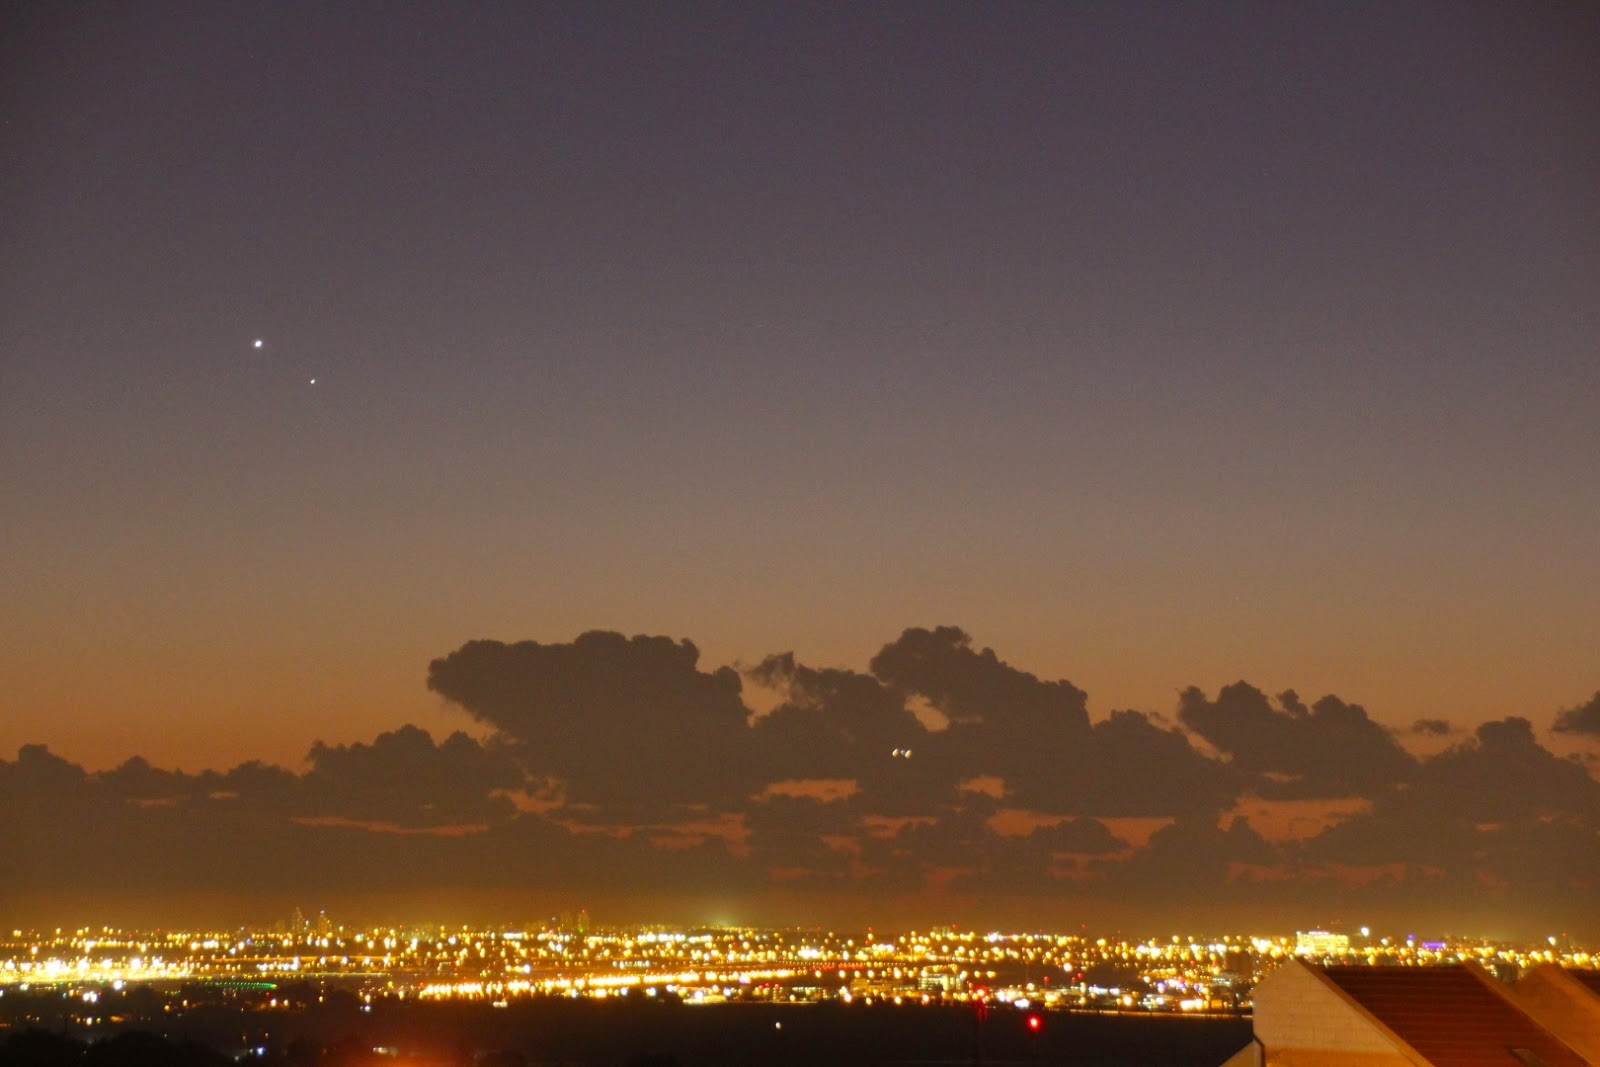 Venus, Mercury and an airplane taking off